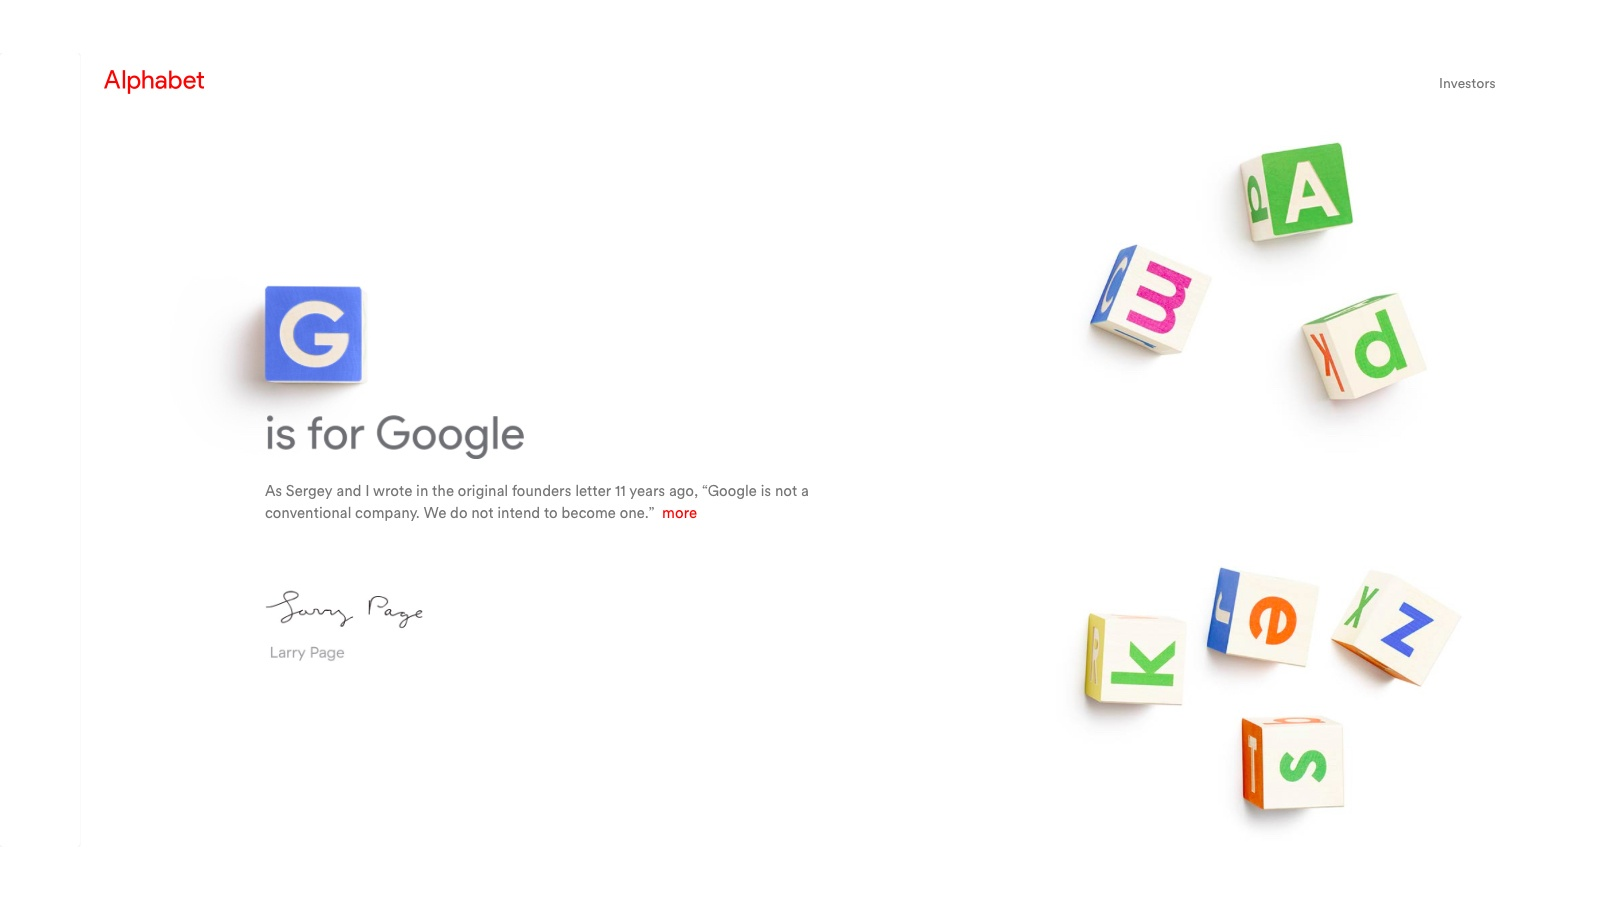 google-now-a-subsidiary-of-a-new-company-alphabet-image-cultofandroidcomwp-contentuploads201508alphabet-jpg